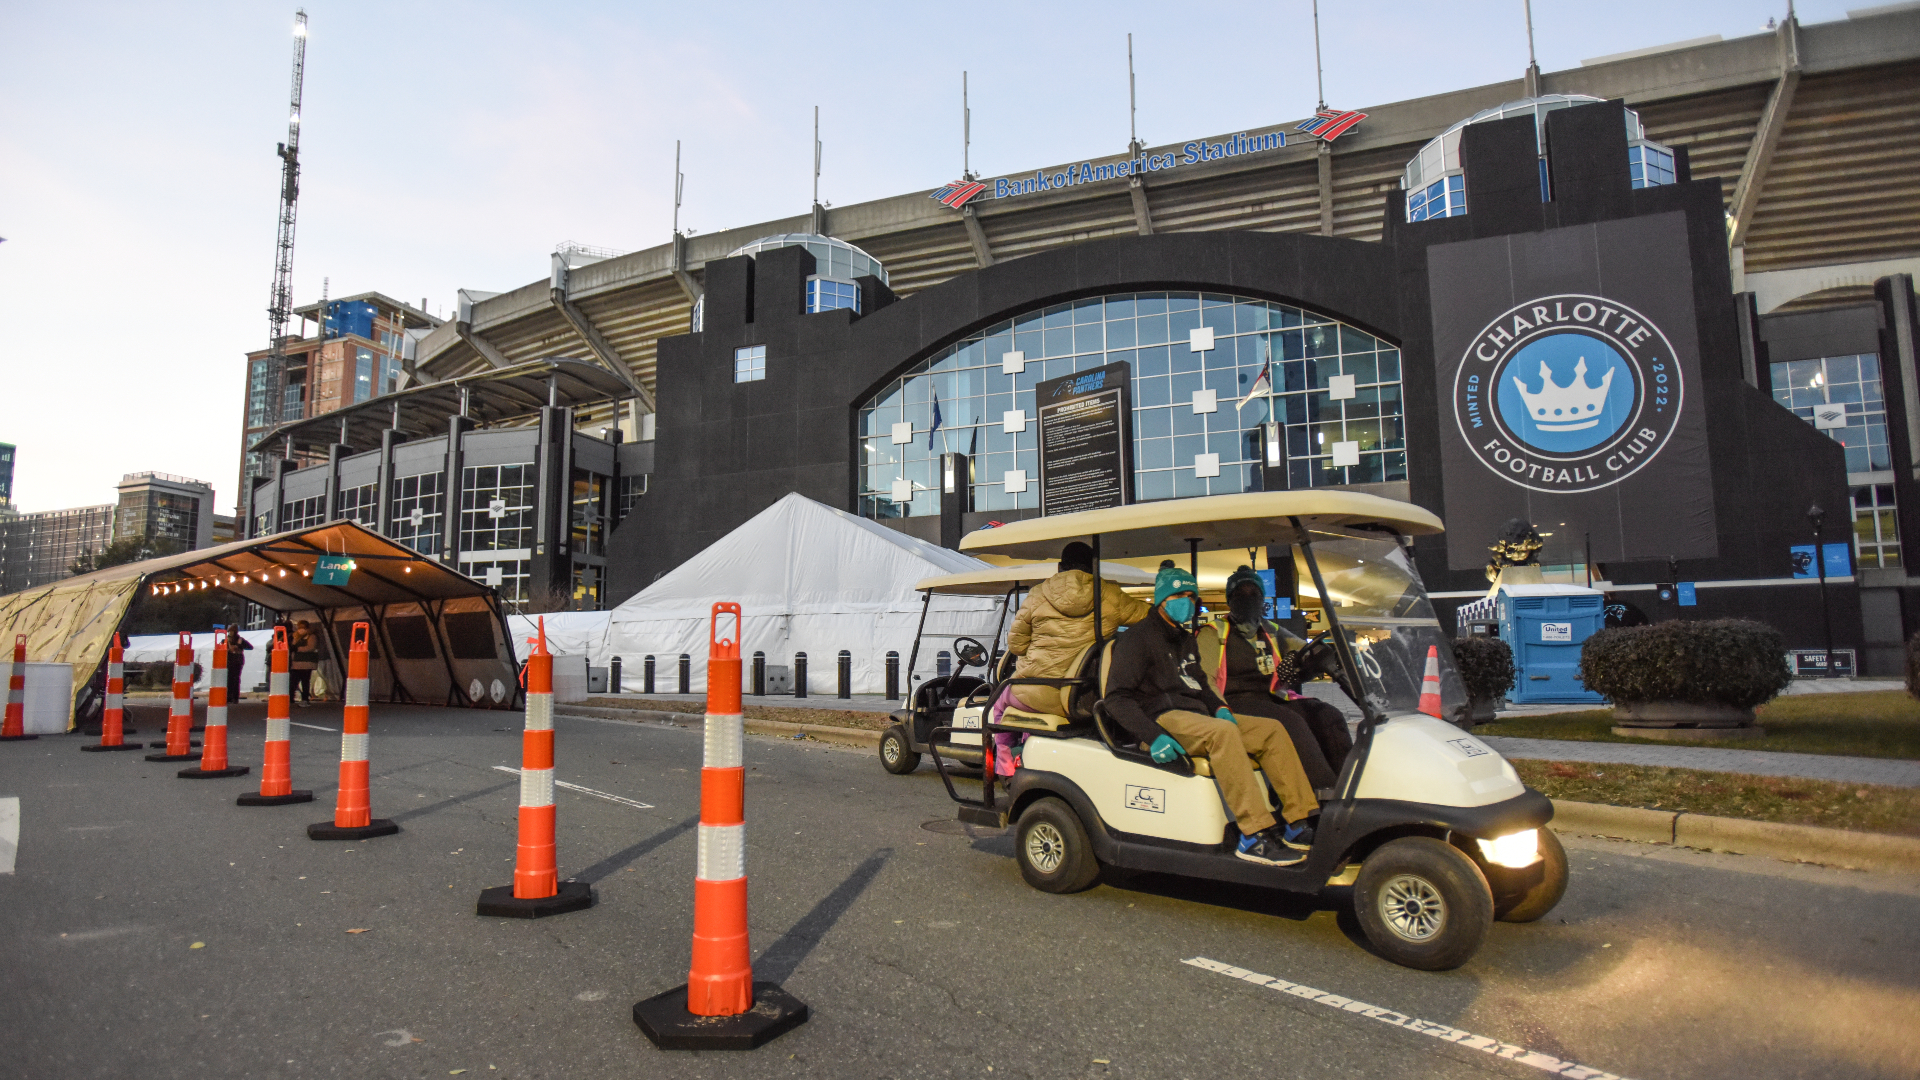 Over 20,000 eligible community members were able to receive their first dose of the COVID-19 vaccine at the first mass vaccination event hosted at Bank of America Stadium. Learn more about the community members who attended the landmark event and how they felt about receiving the vaccine.